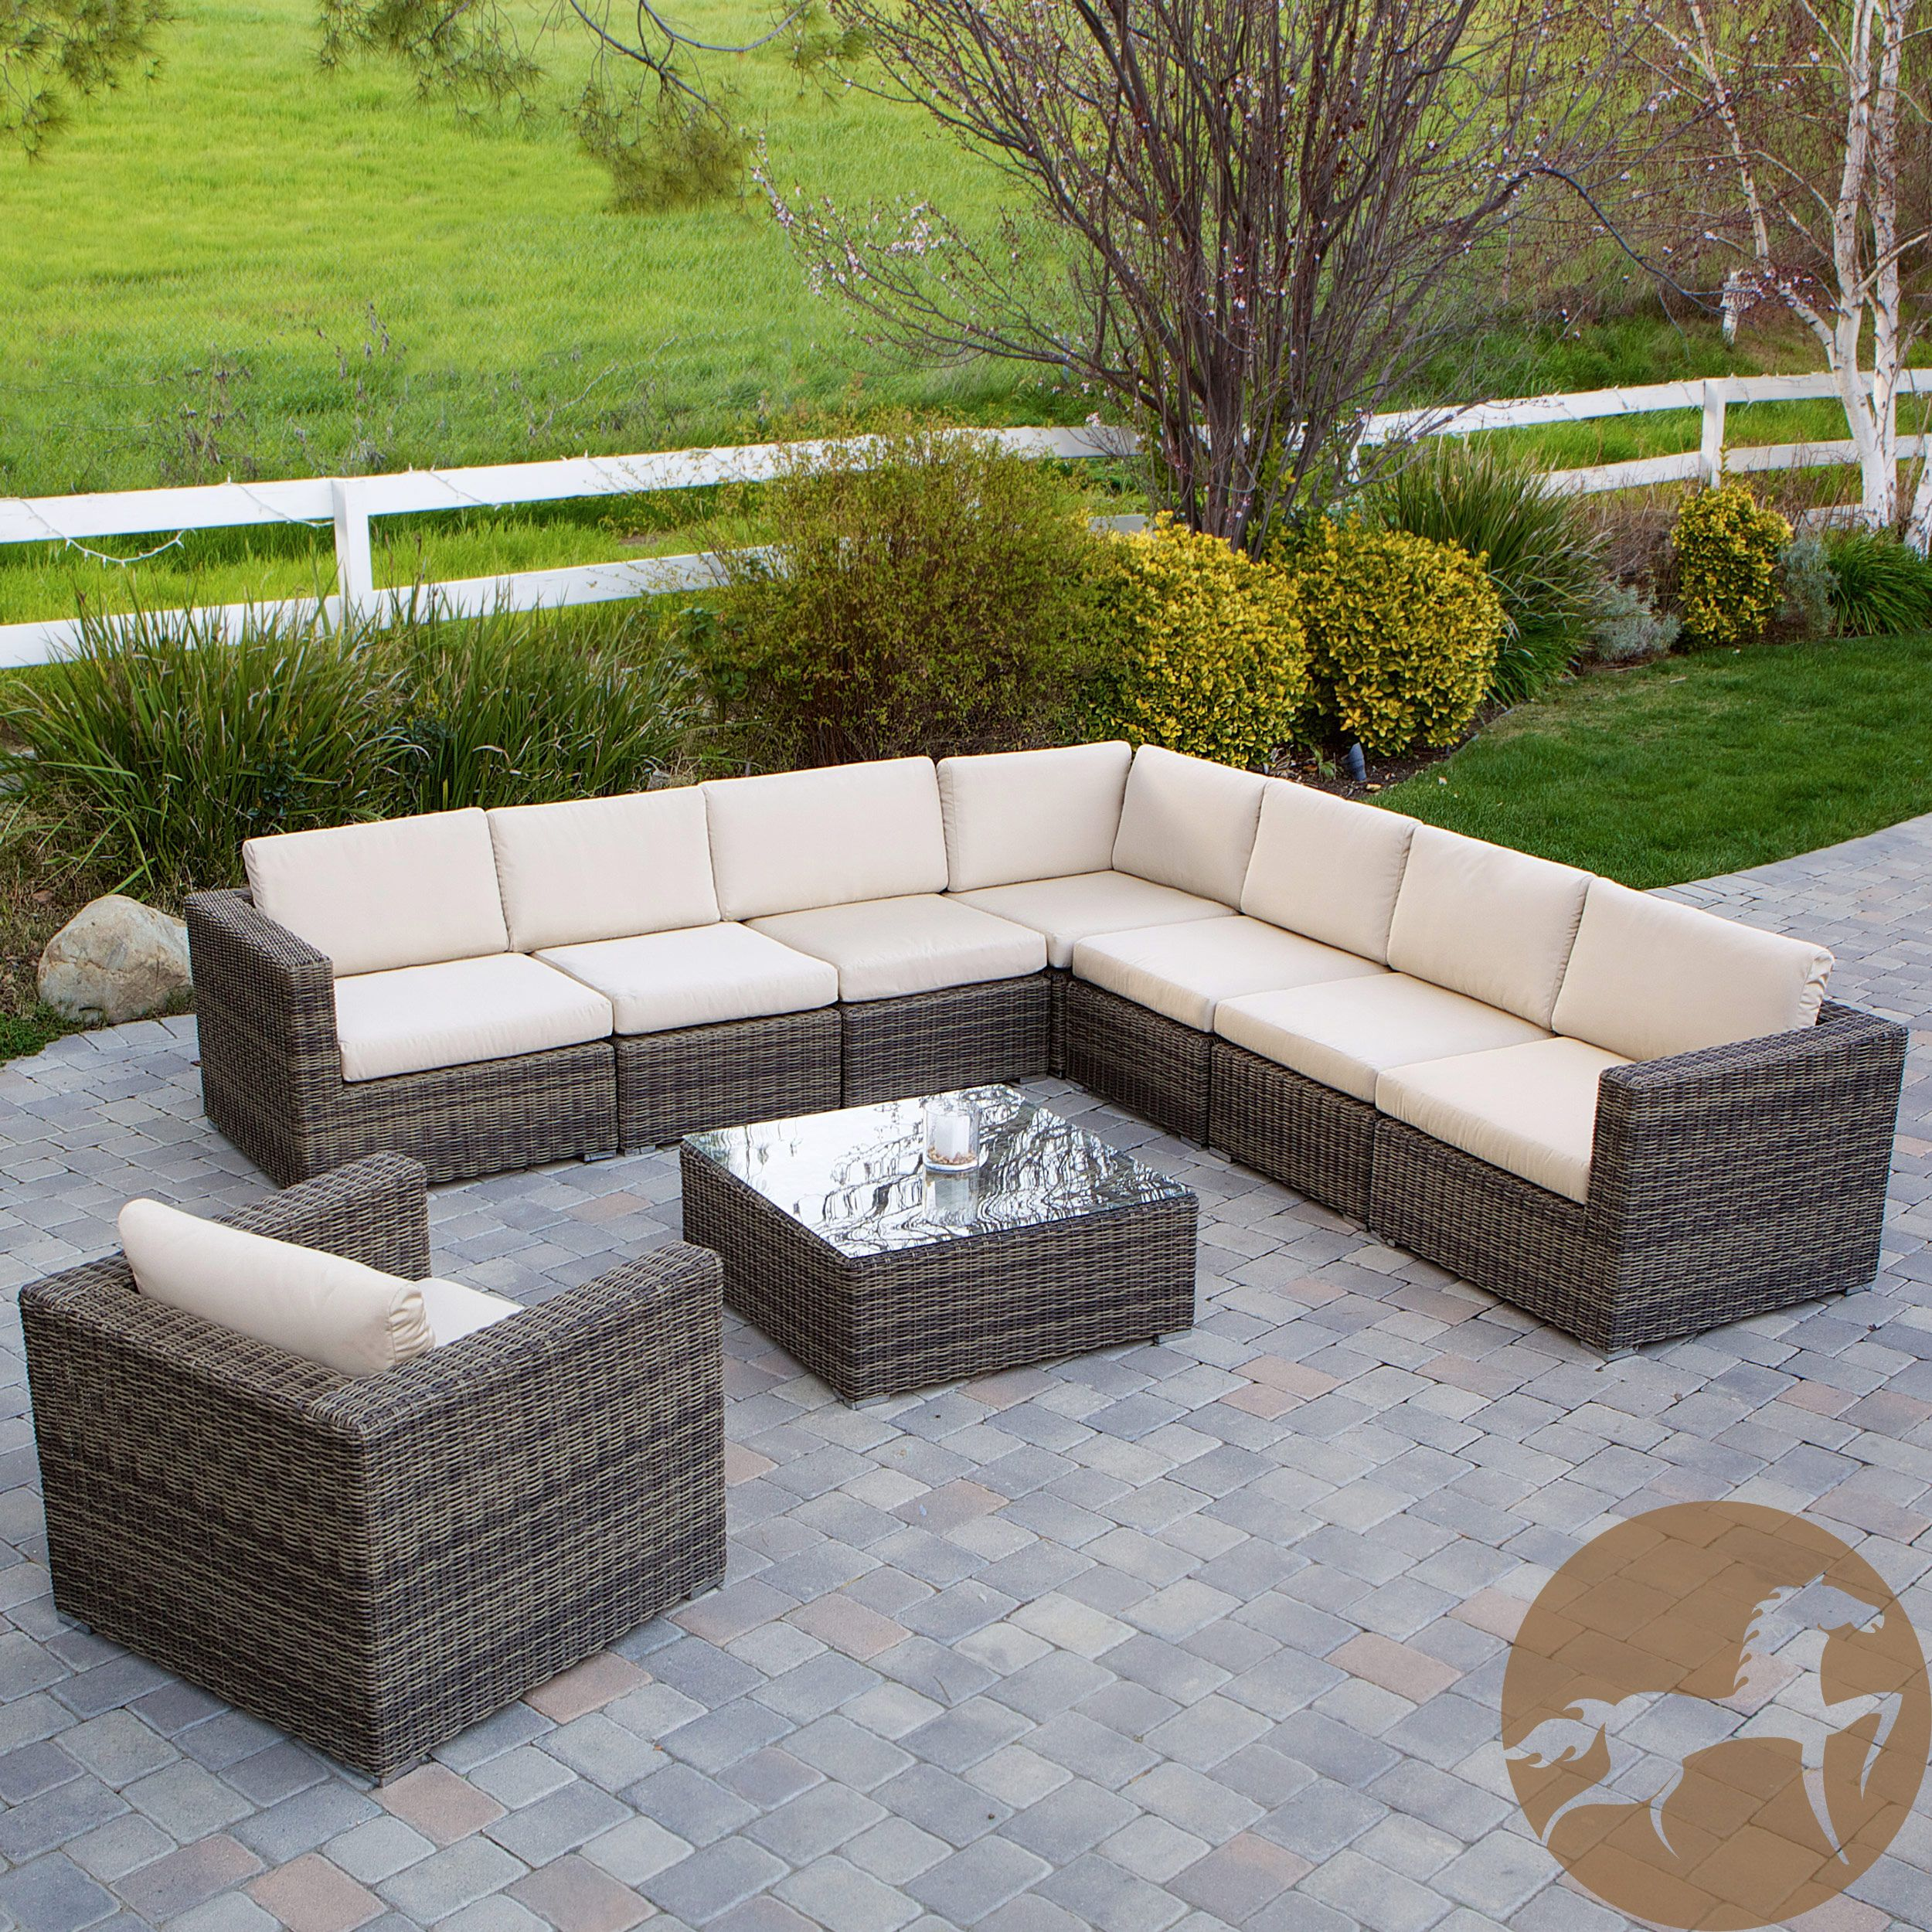 Christopher Knight Home Santa Rosa 9 piece Outdoor Sofa Sectional